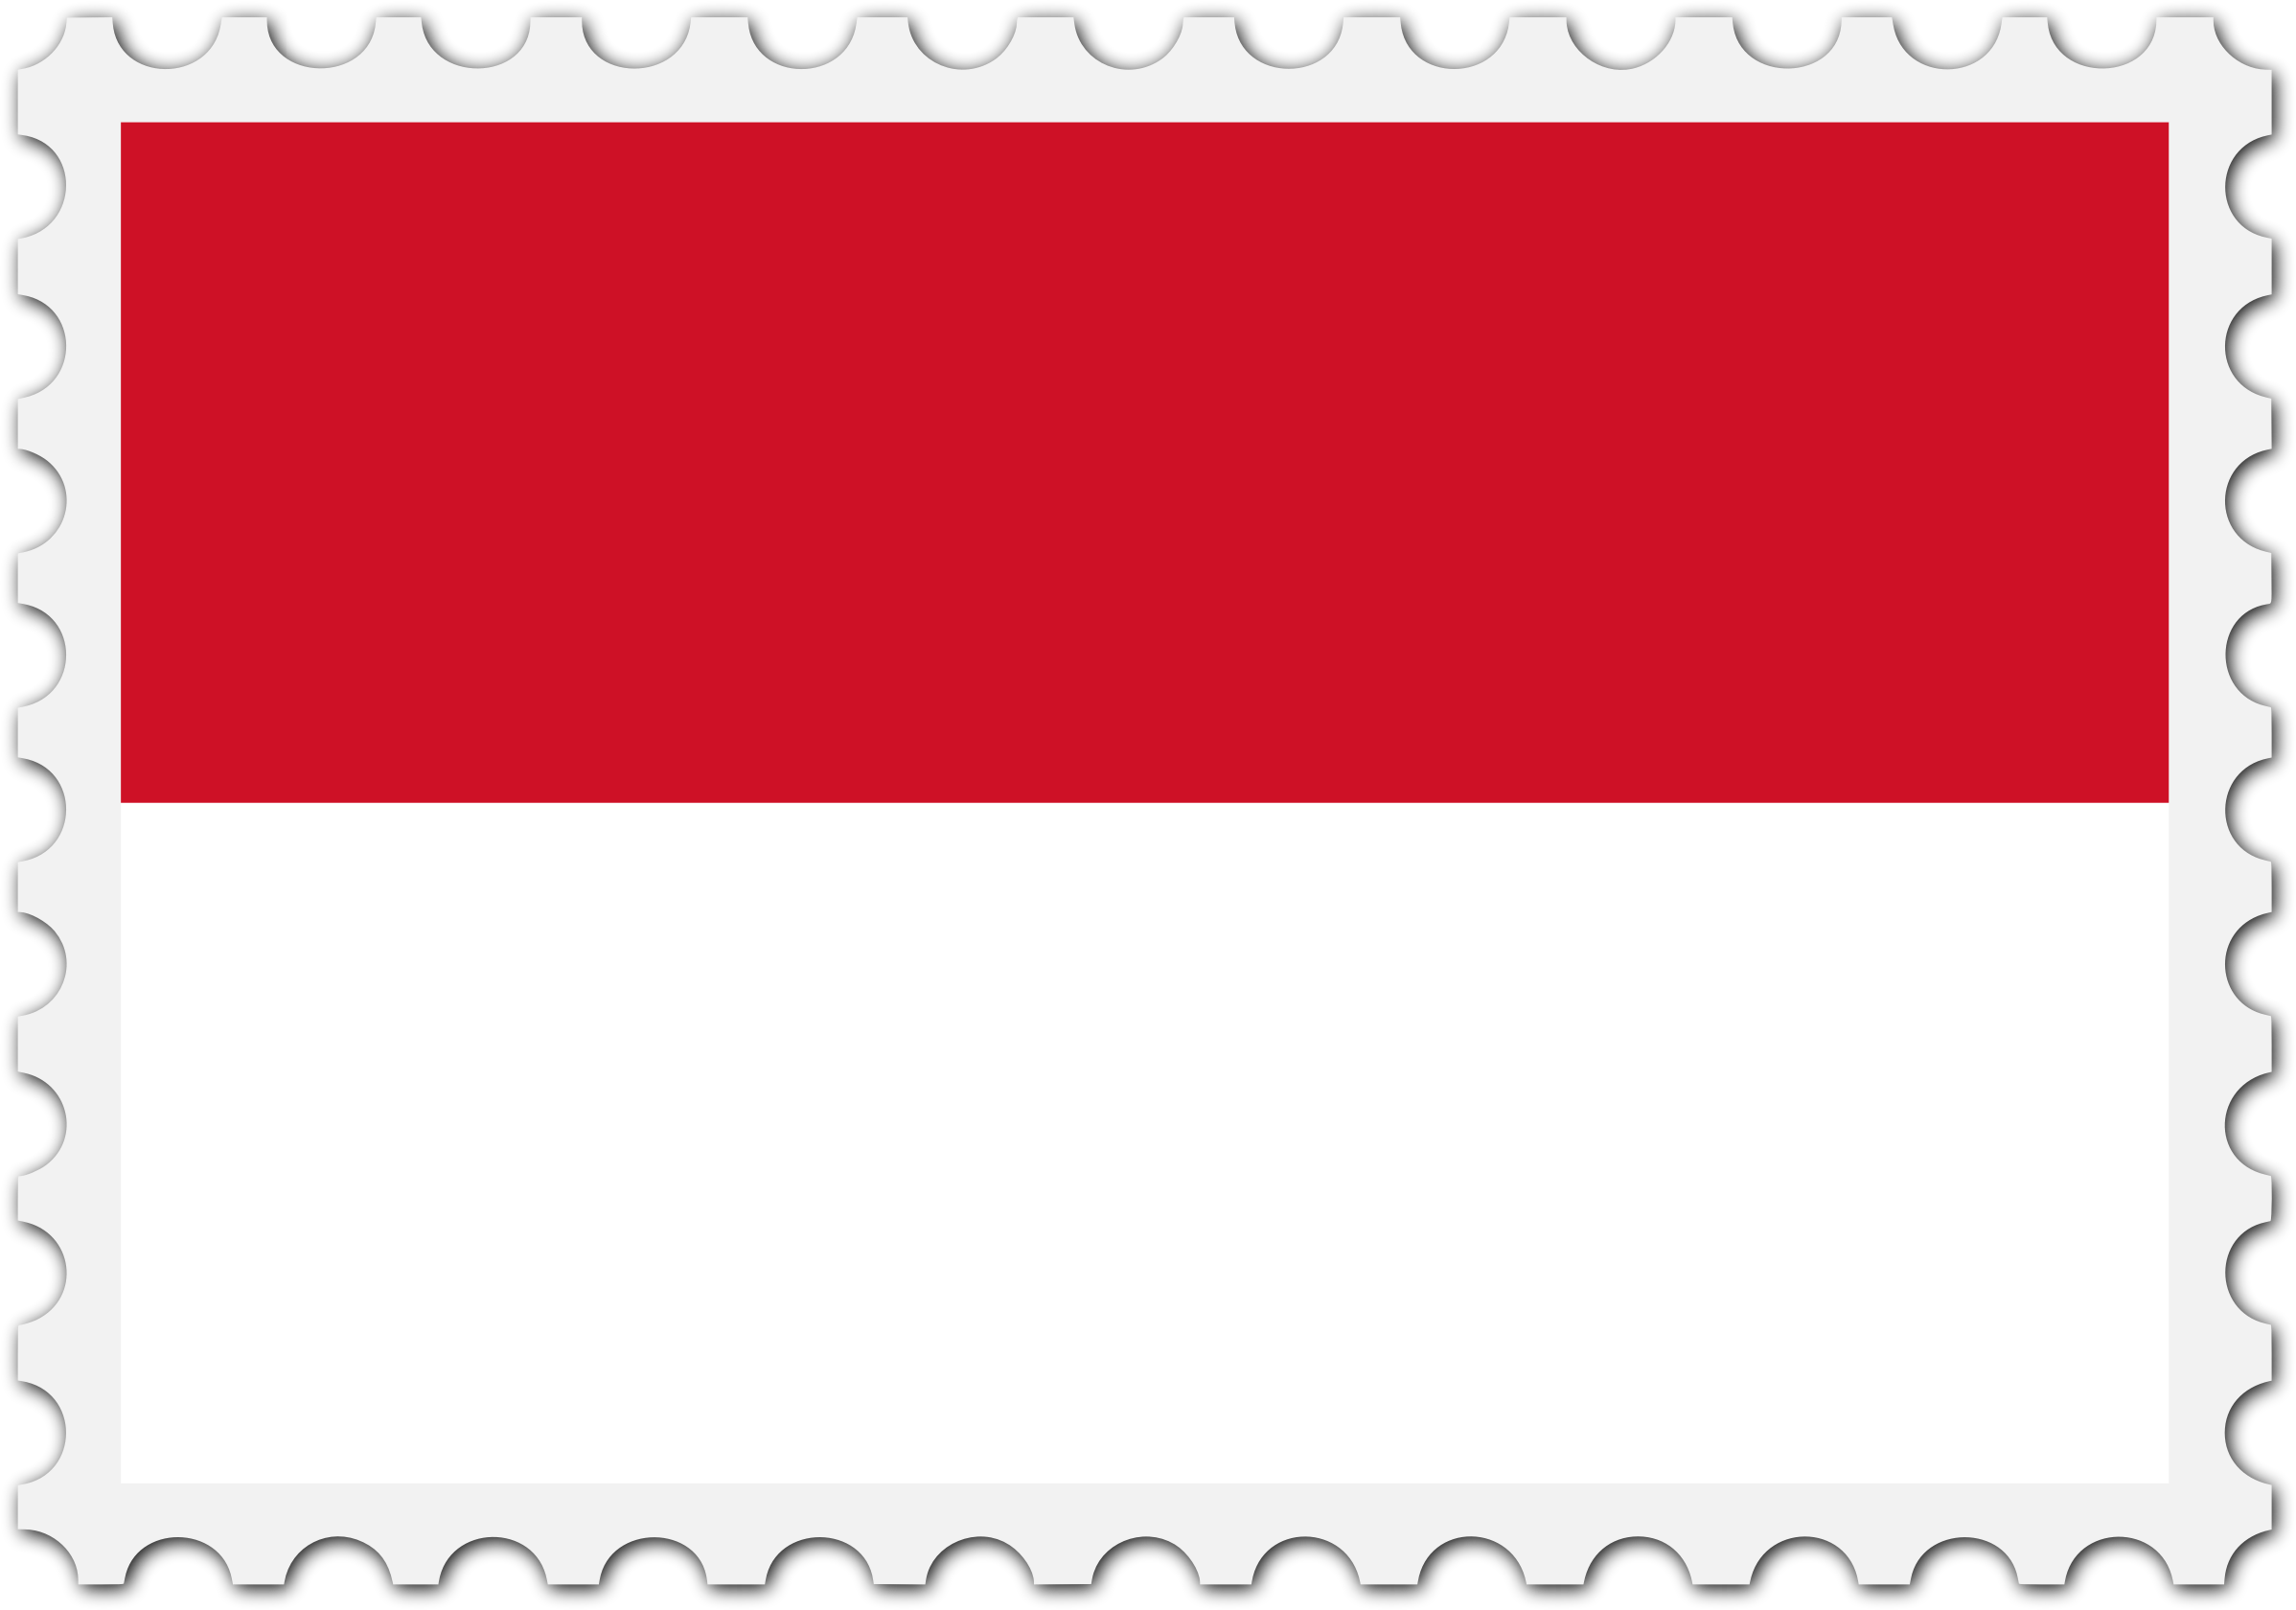 Indonesia flag stamp by Firkin